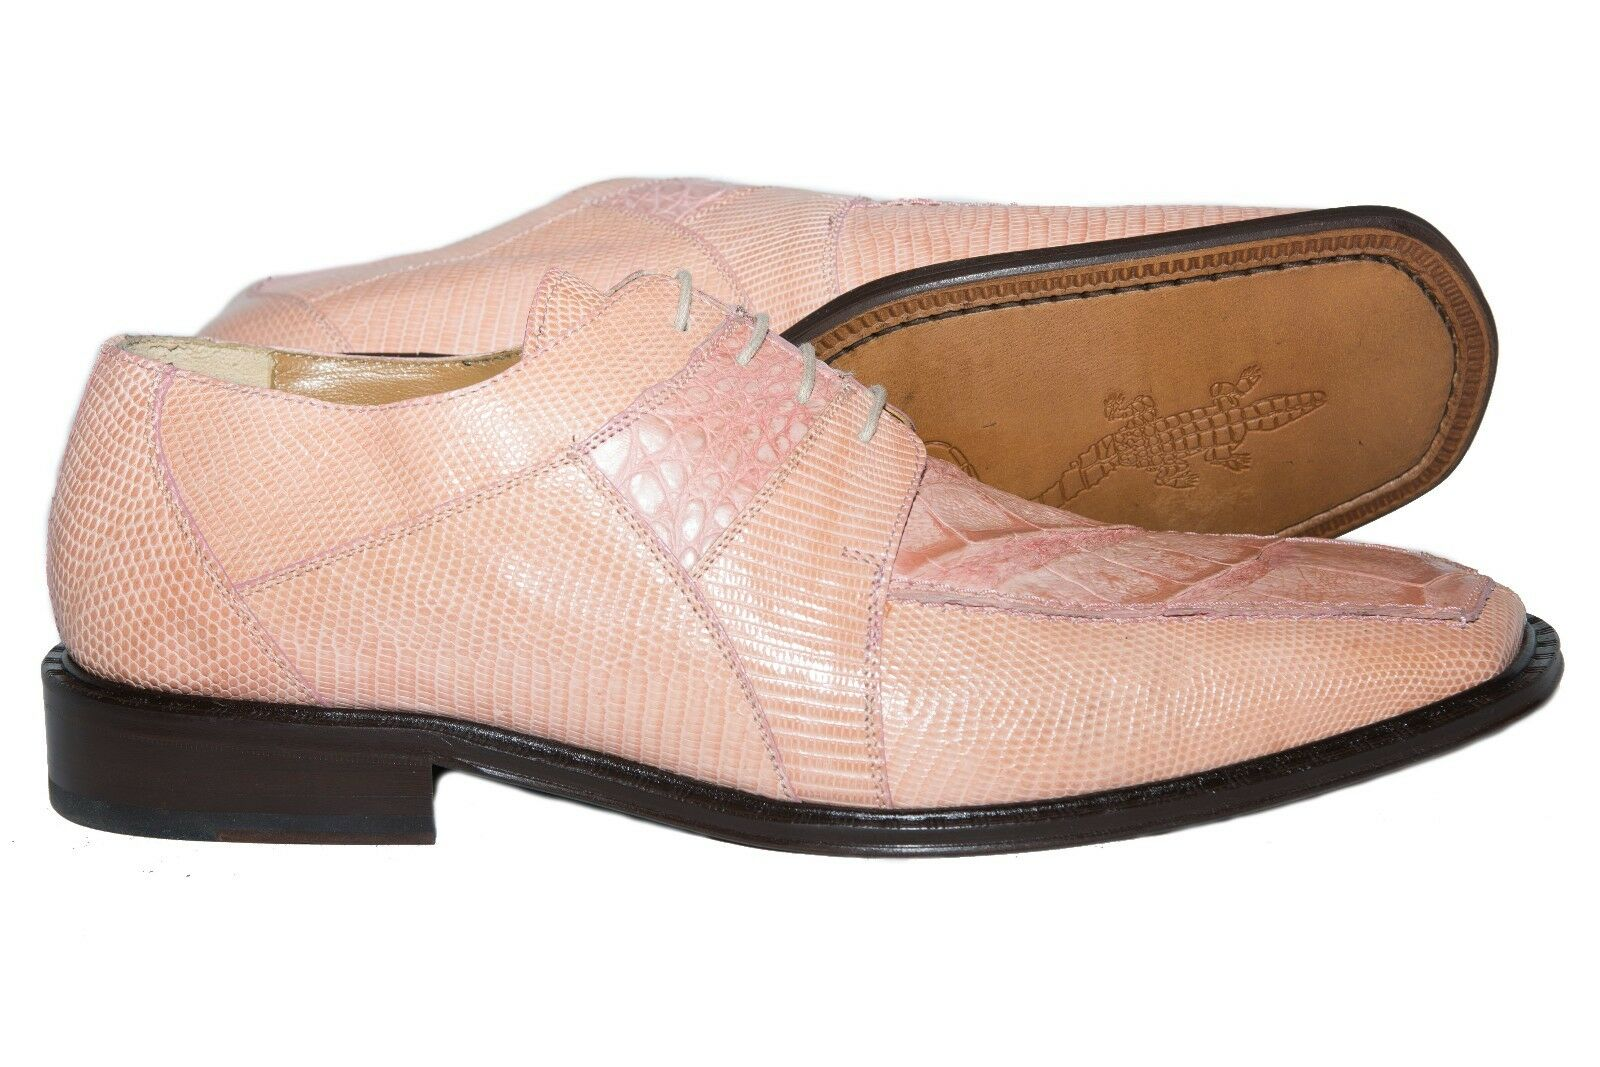 David Eden L-82 Made in Spain pink crocodile and lizard lace up shoes Scarpe classiche da uomo